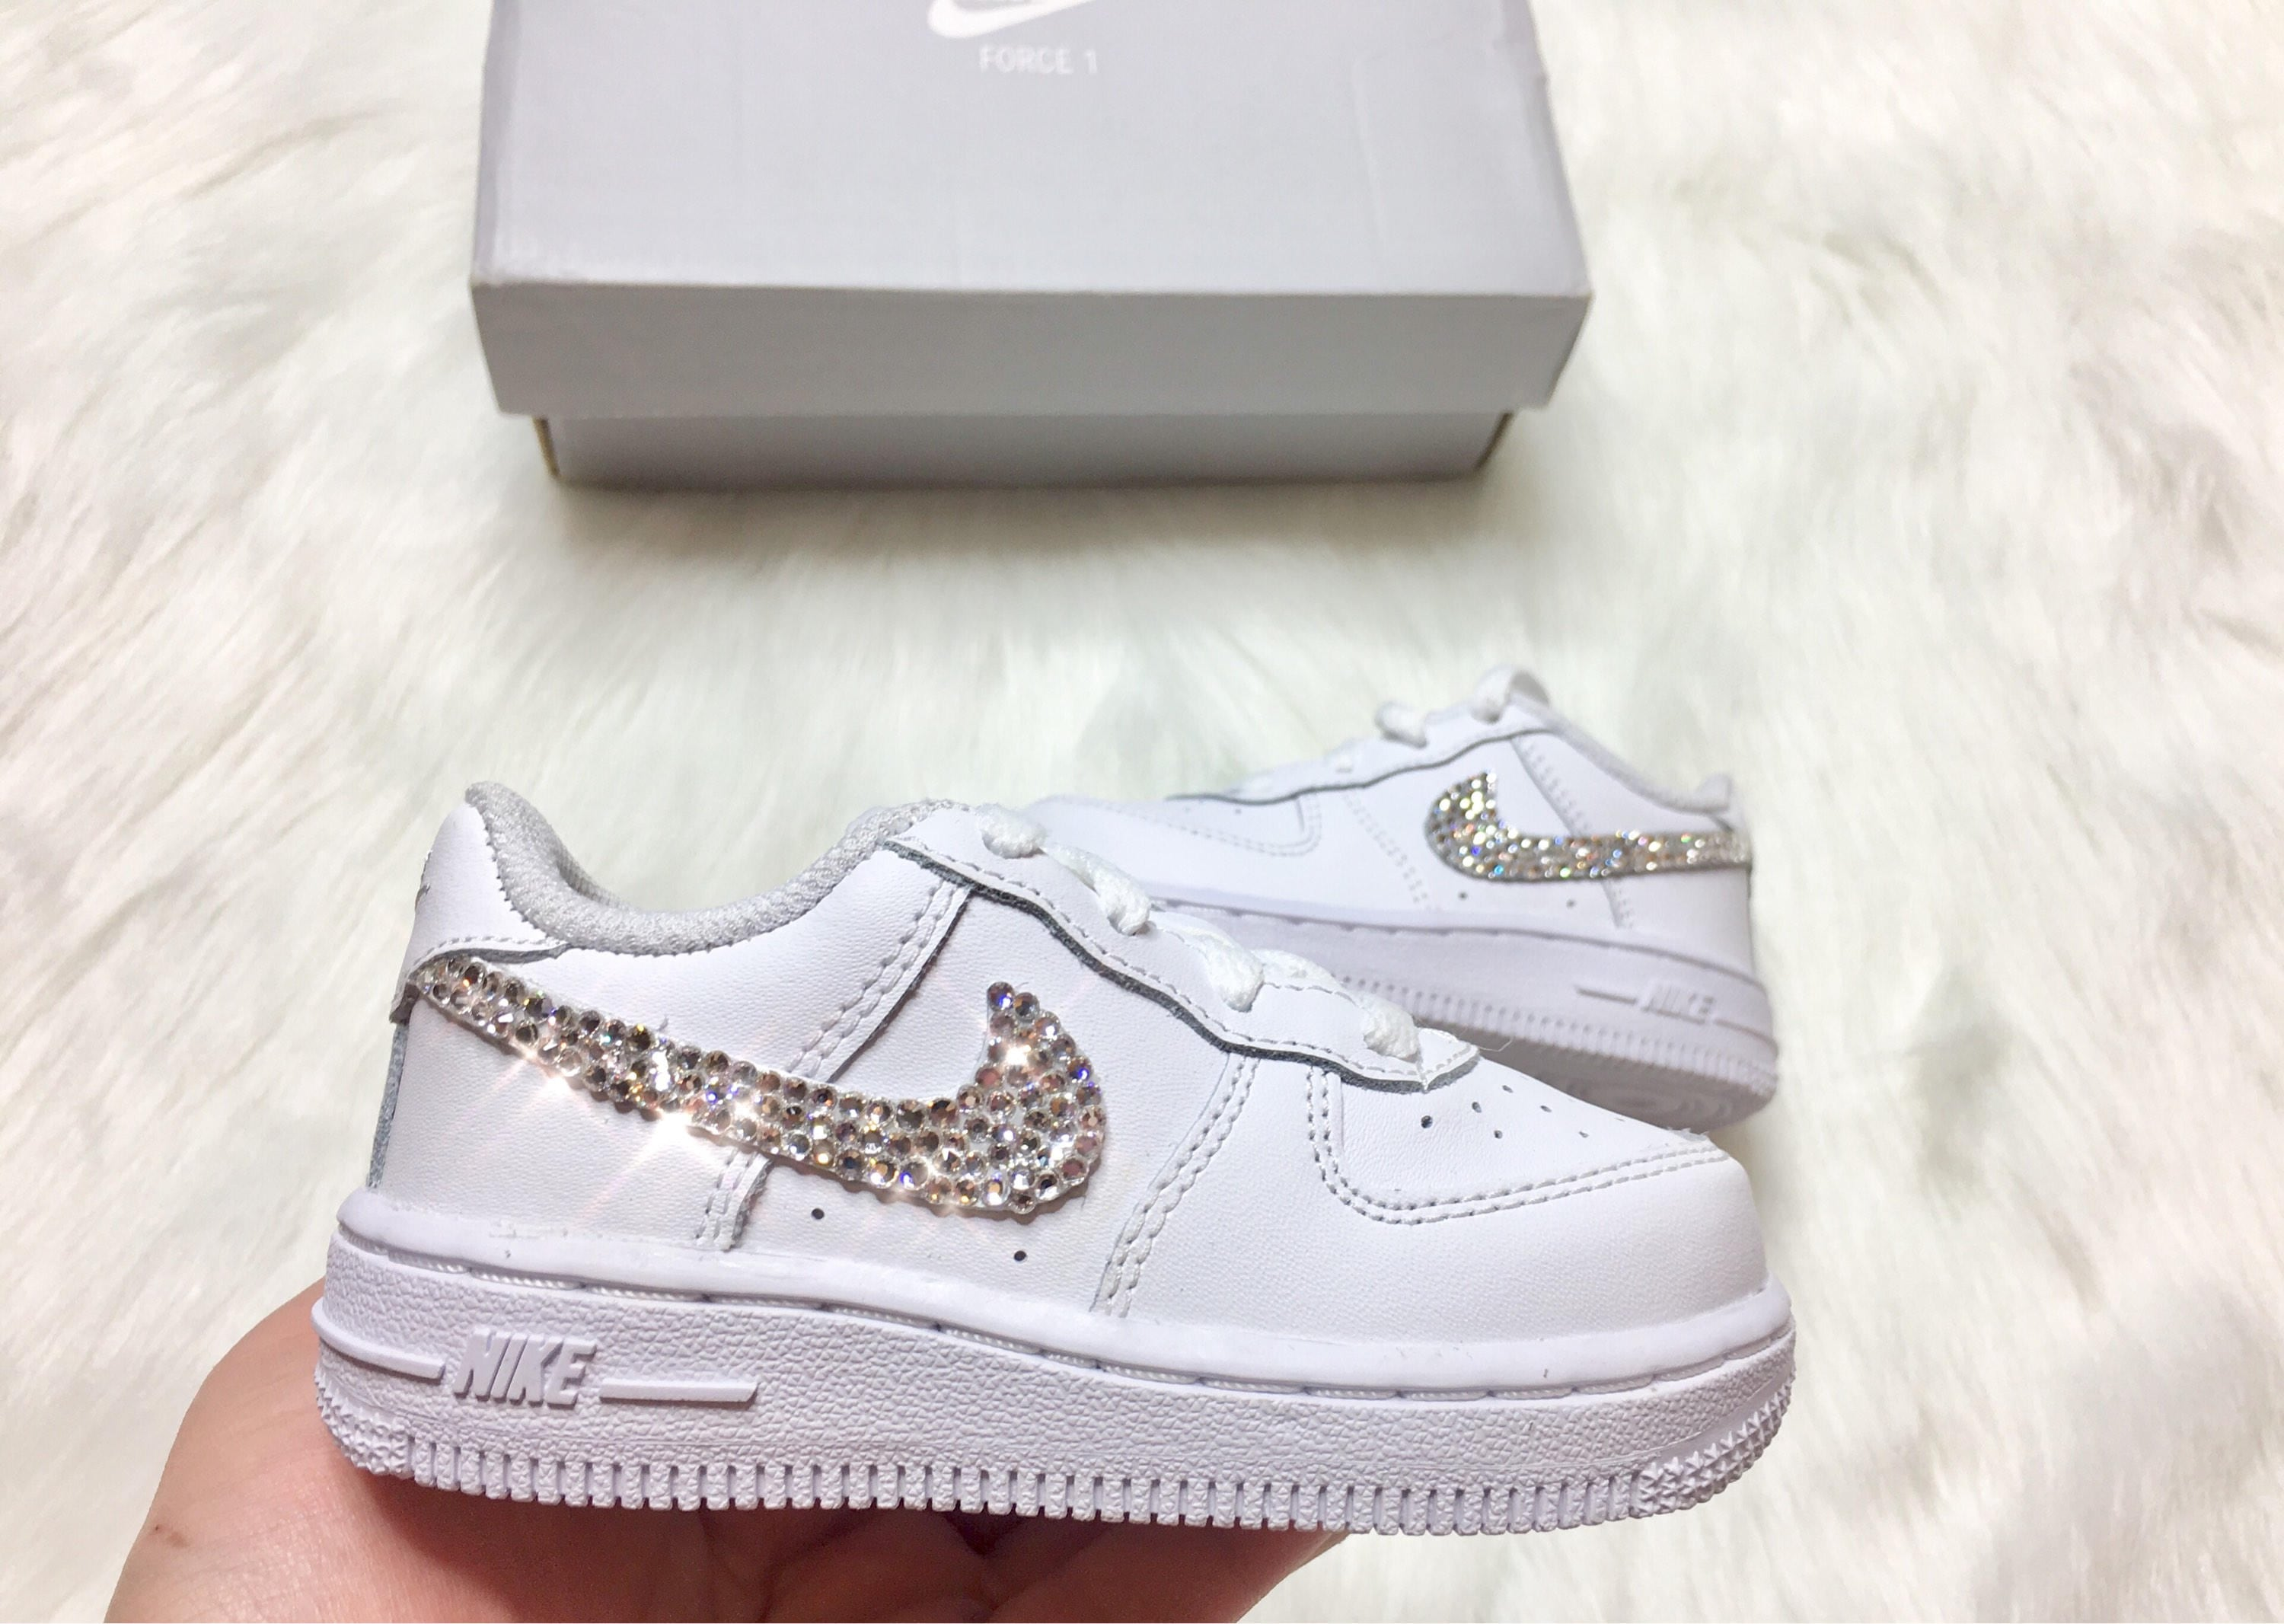 Bling Nikes Baby Kicks Toddler Nike Air Force 1 Low Customized  97c02314c243